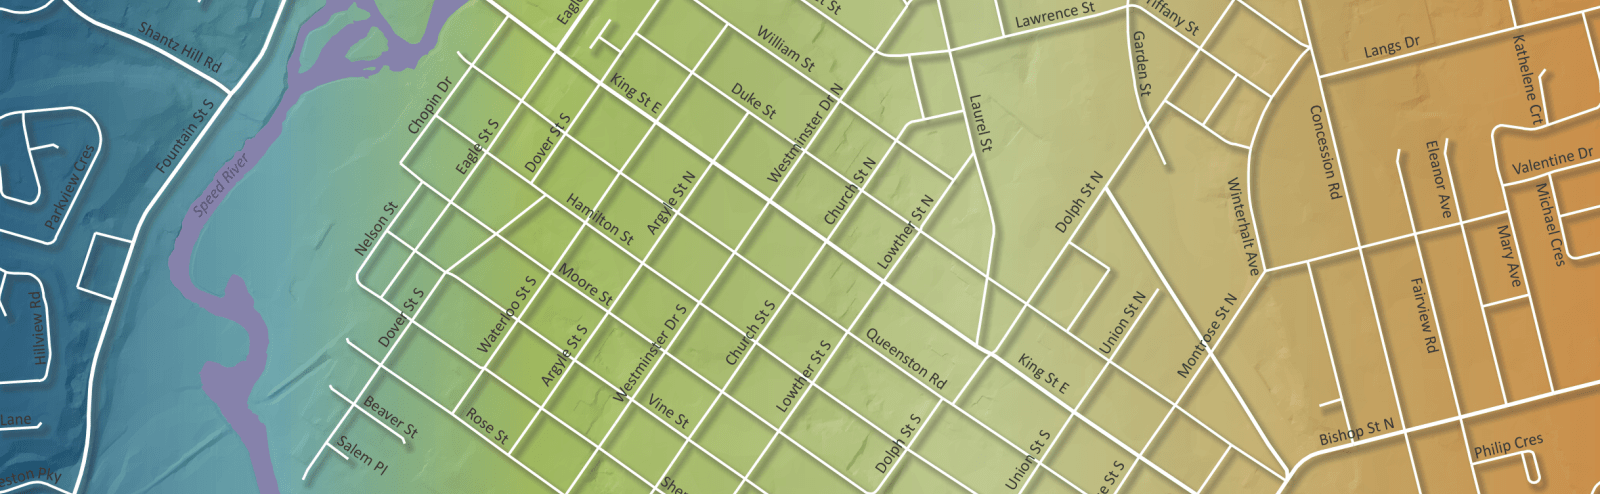 Map of Cambridge streets